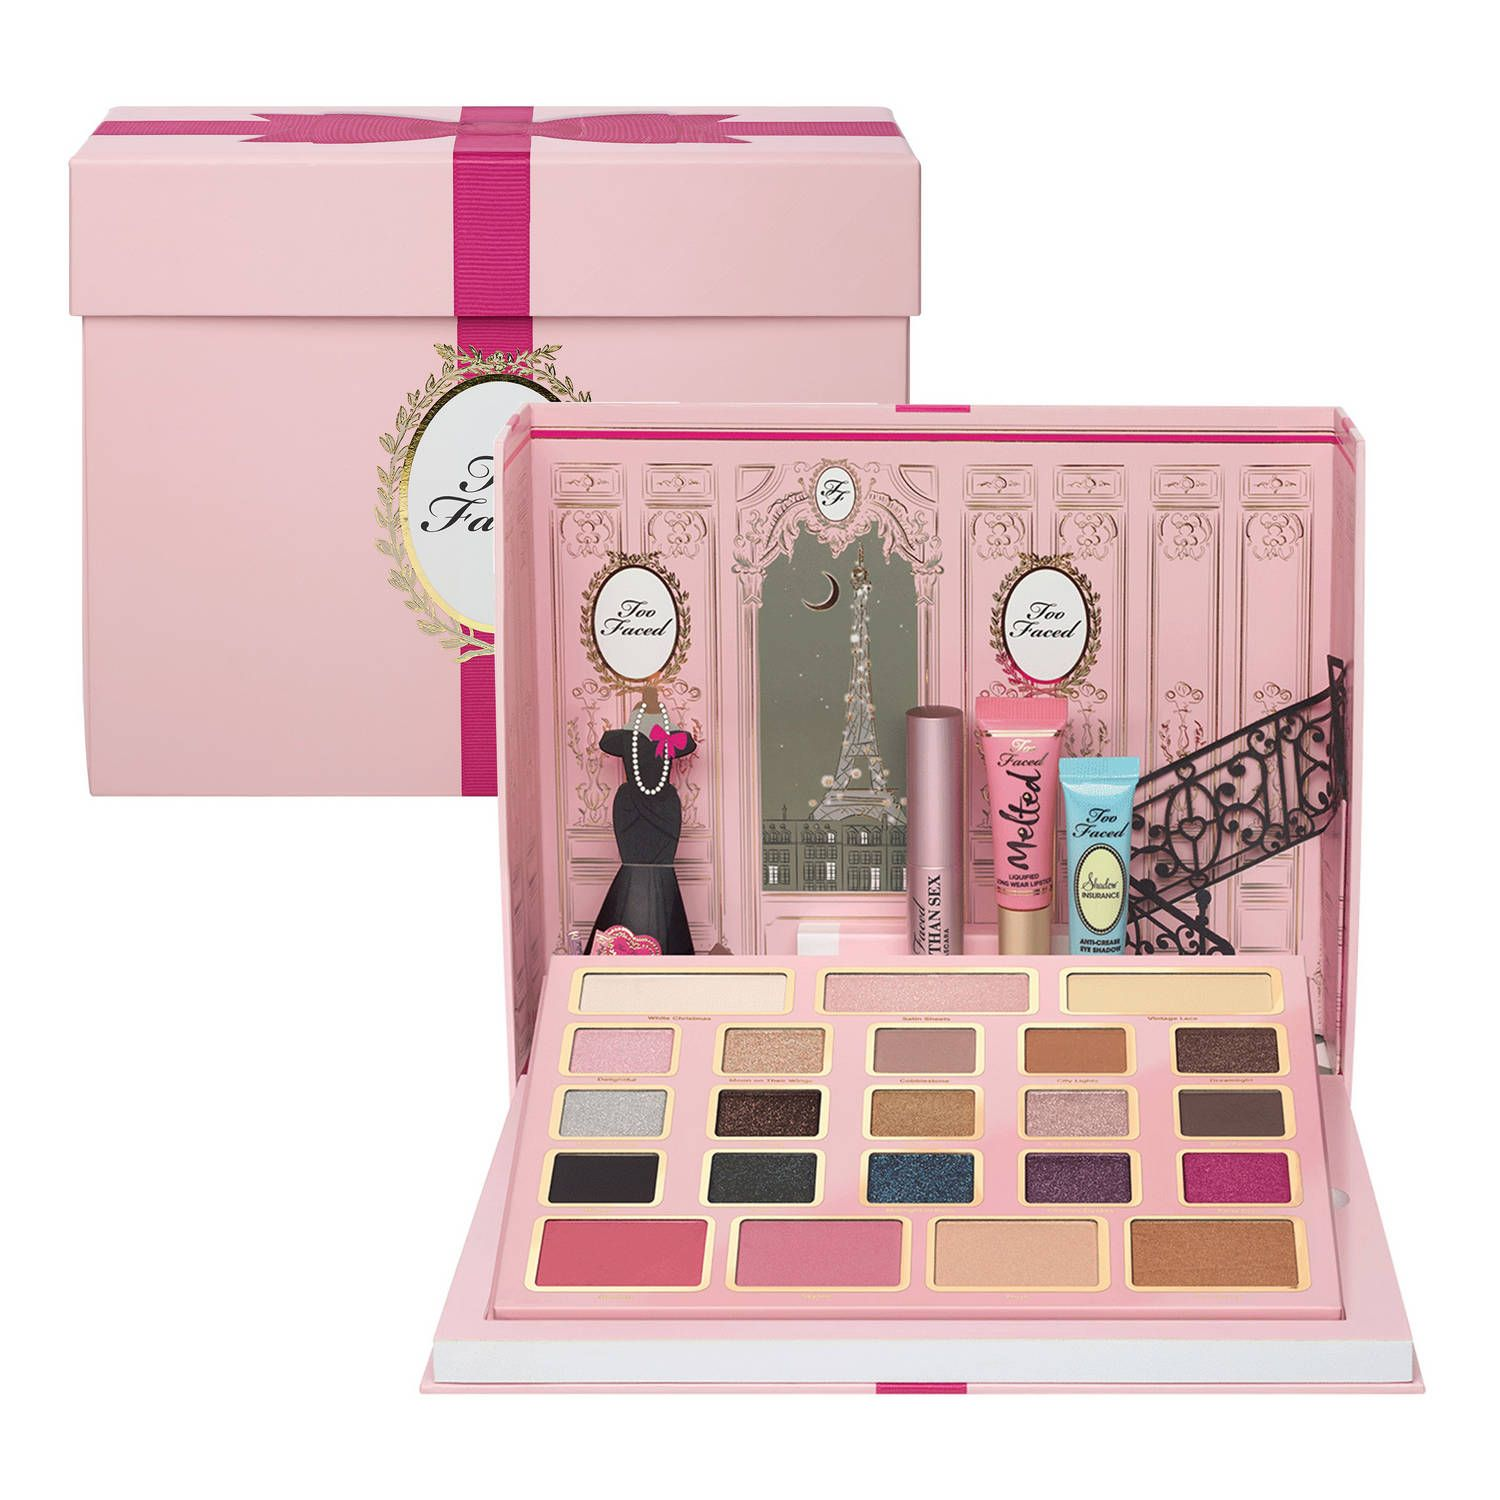 le grand palais de too faced coffret de maquillage de too faced sur wish list. Black Bedroom Furniture Sets. Home Design Ideas